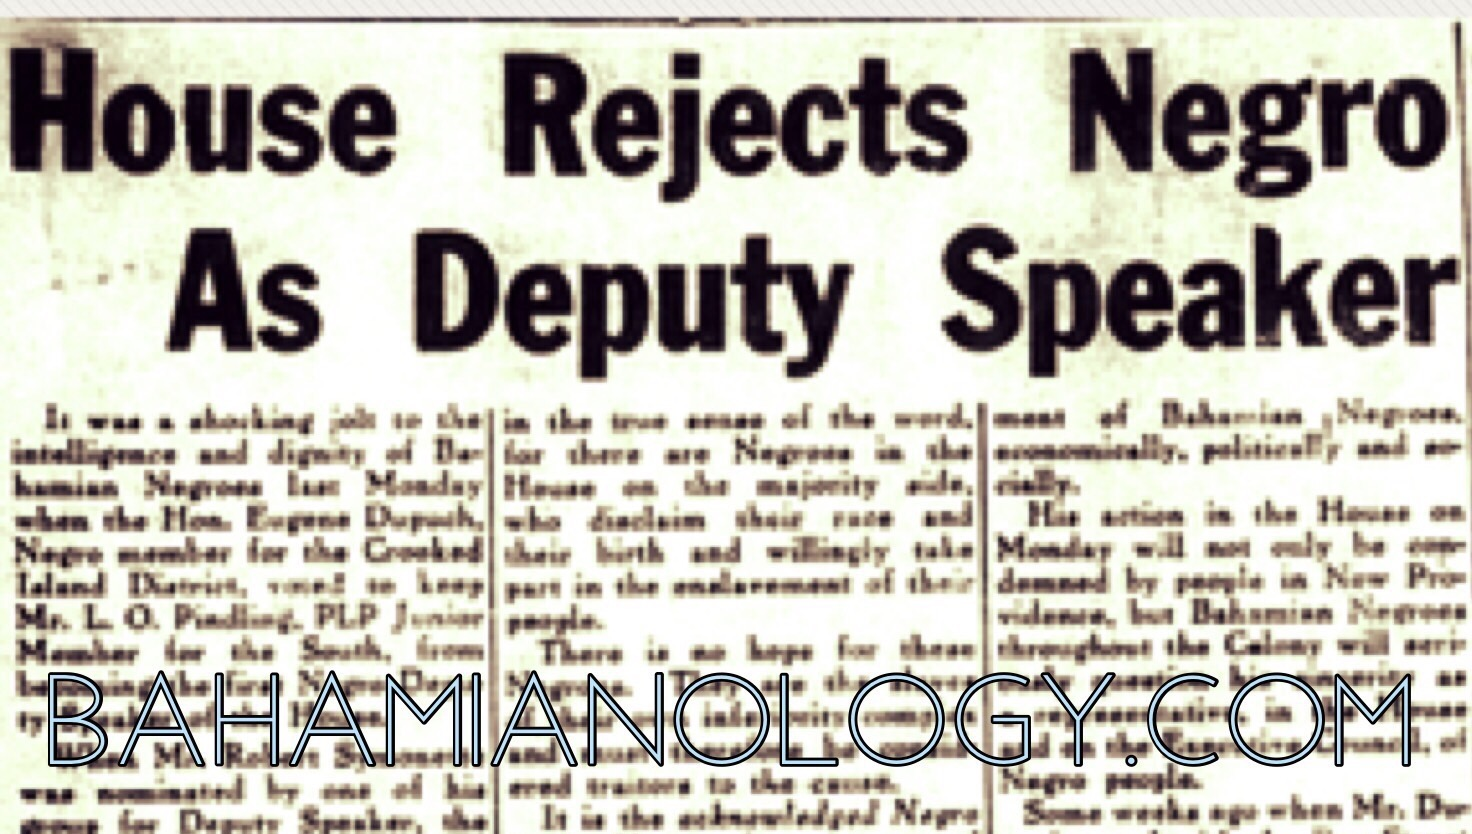 HOUSE REJECTS NEGRO AS DEPUTY SPEAKER 1958